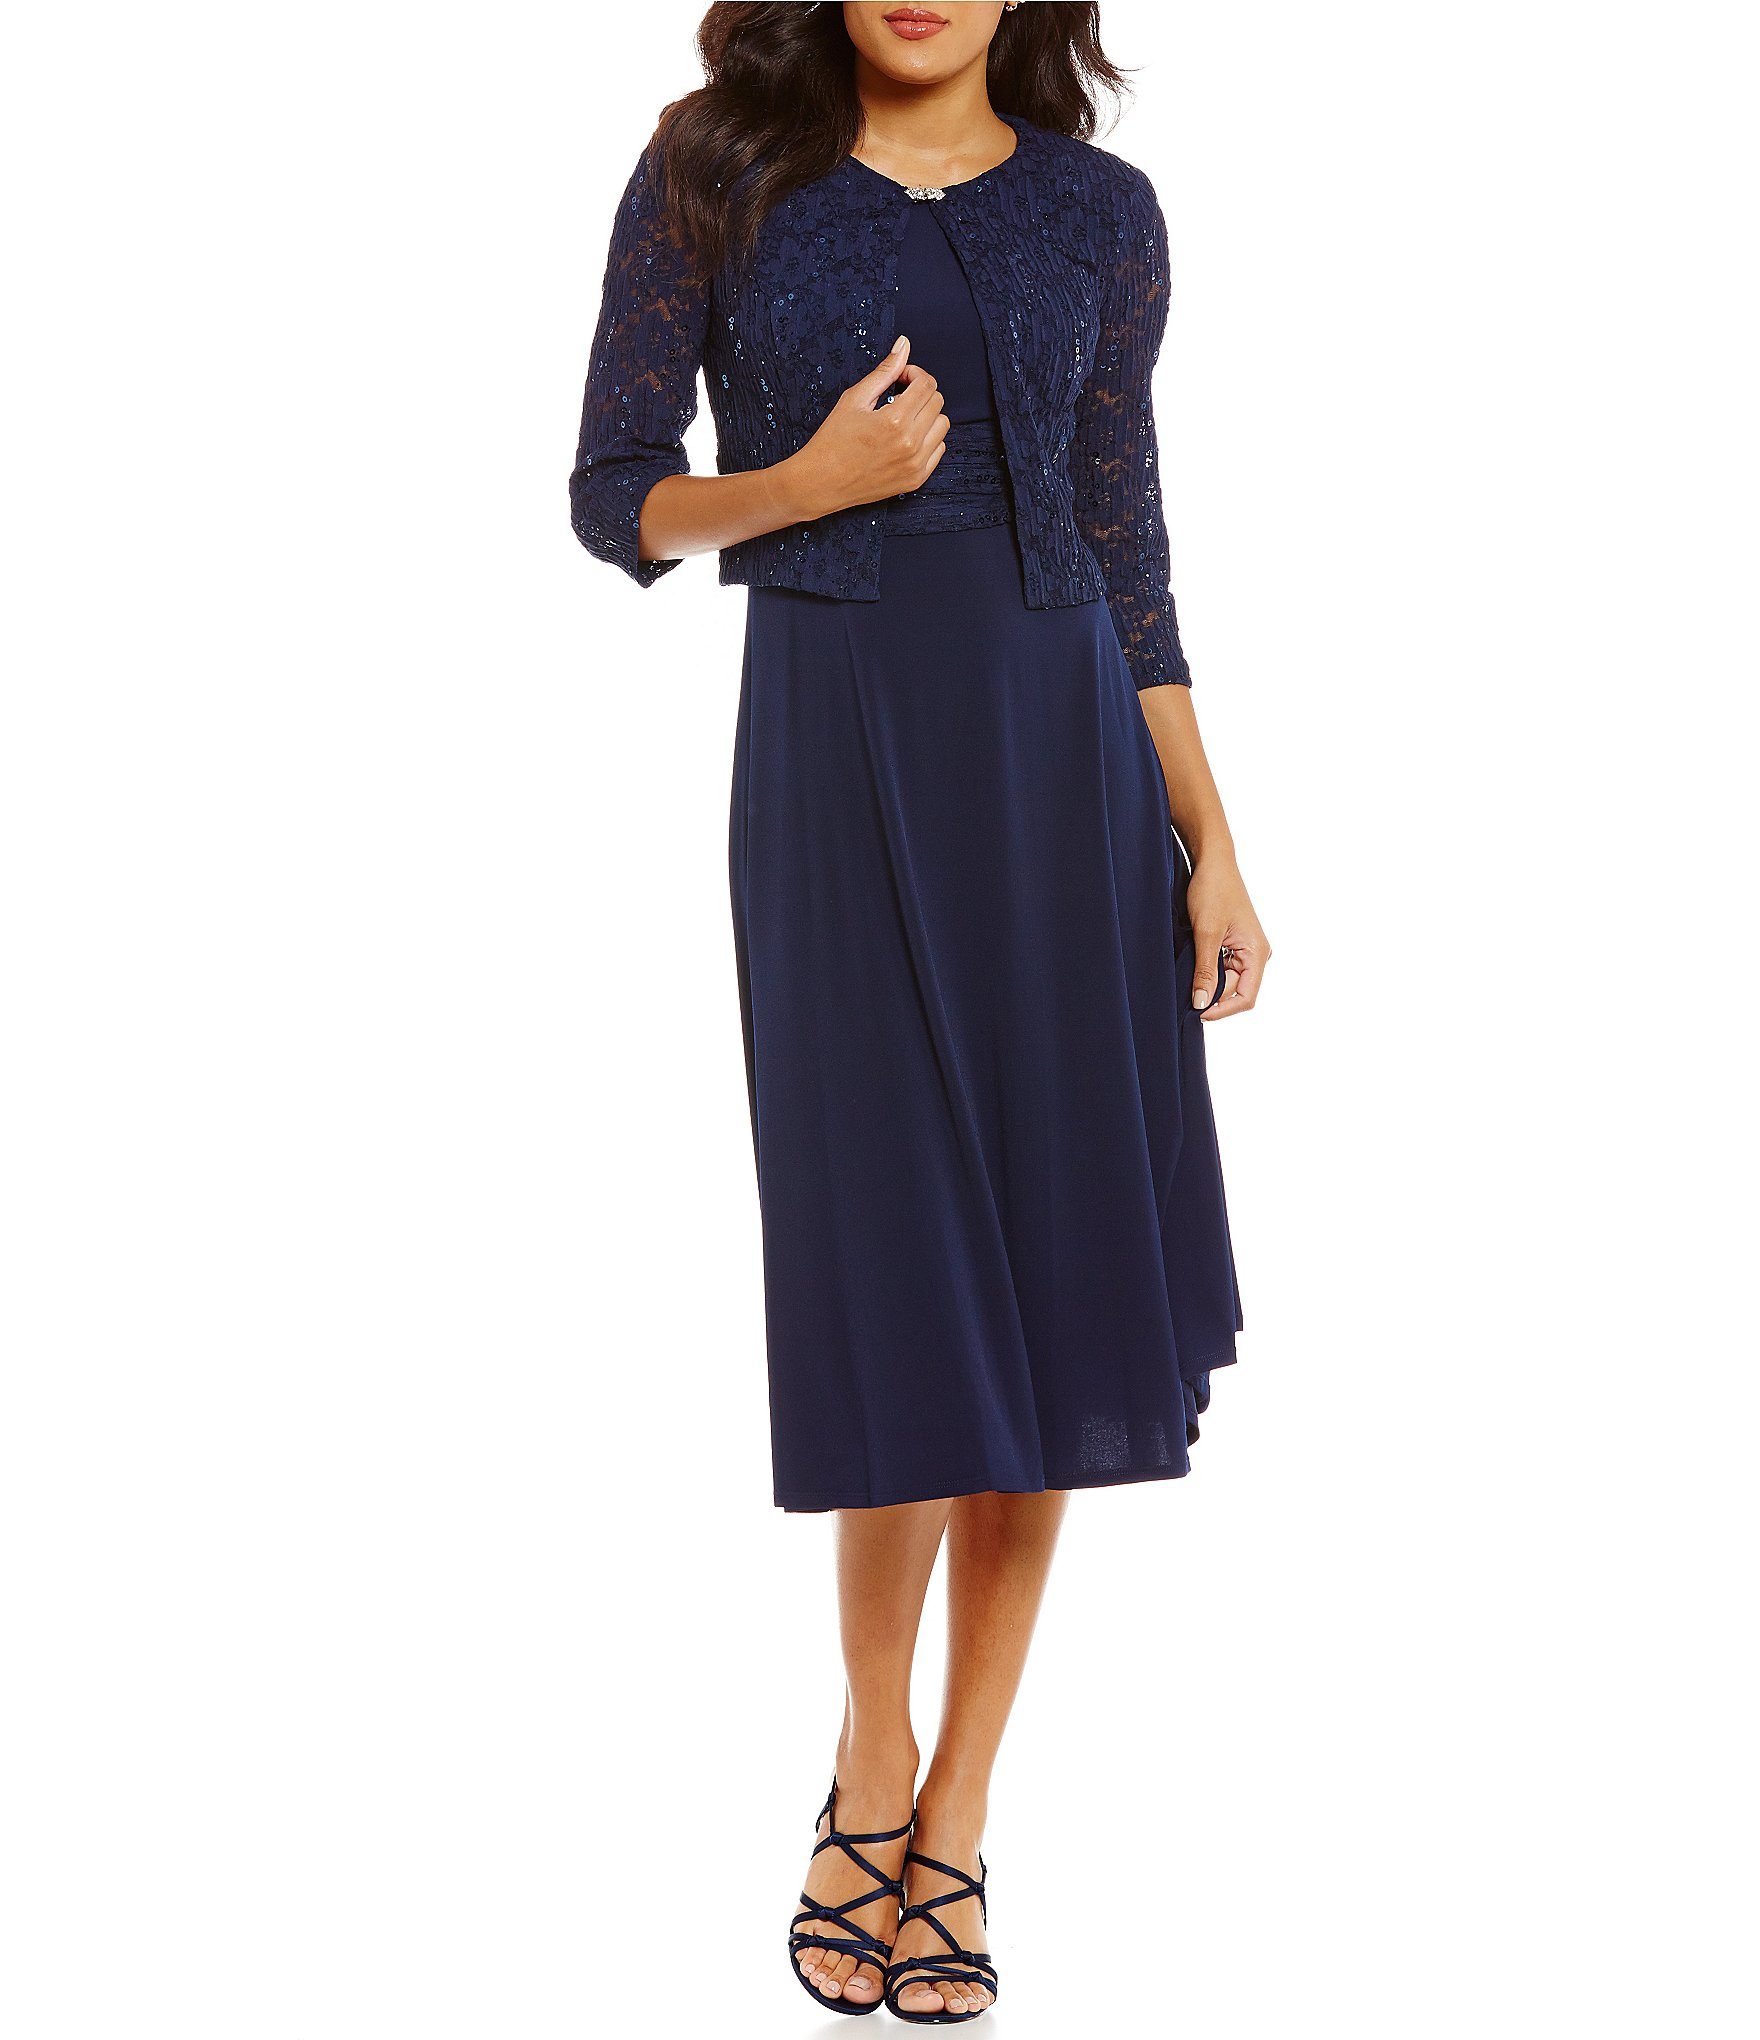 Women\'s Clothing | Petite | Dillards.com